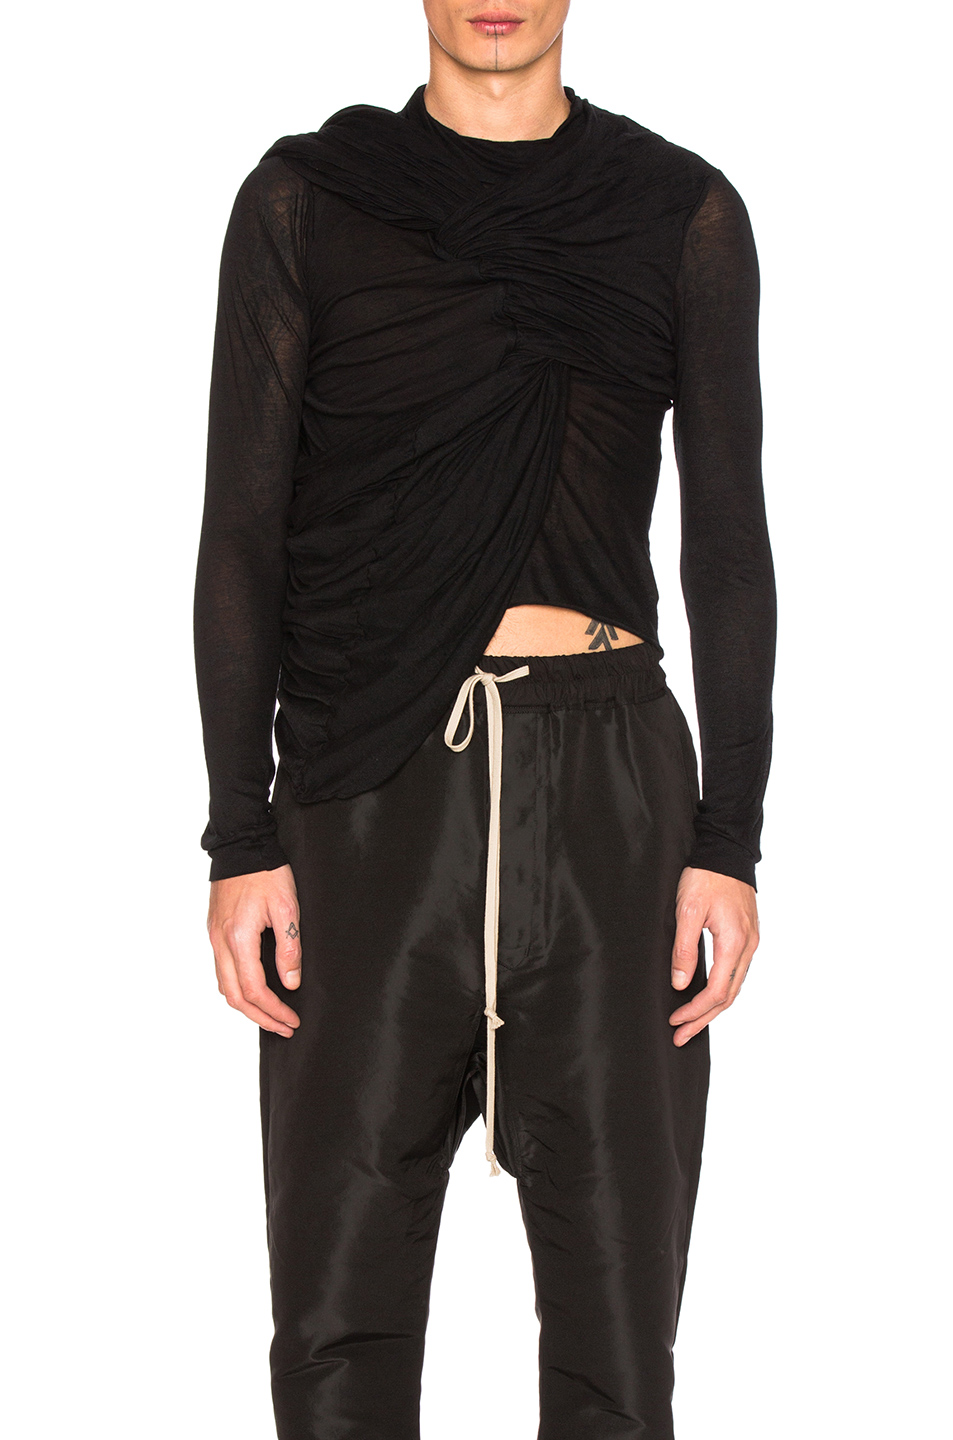 Rick Owens Trunk Tee in Black